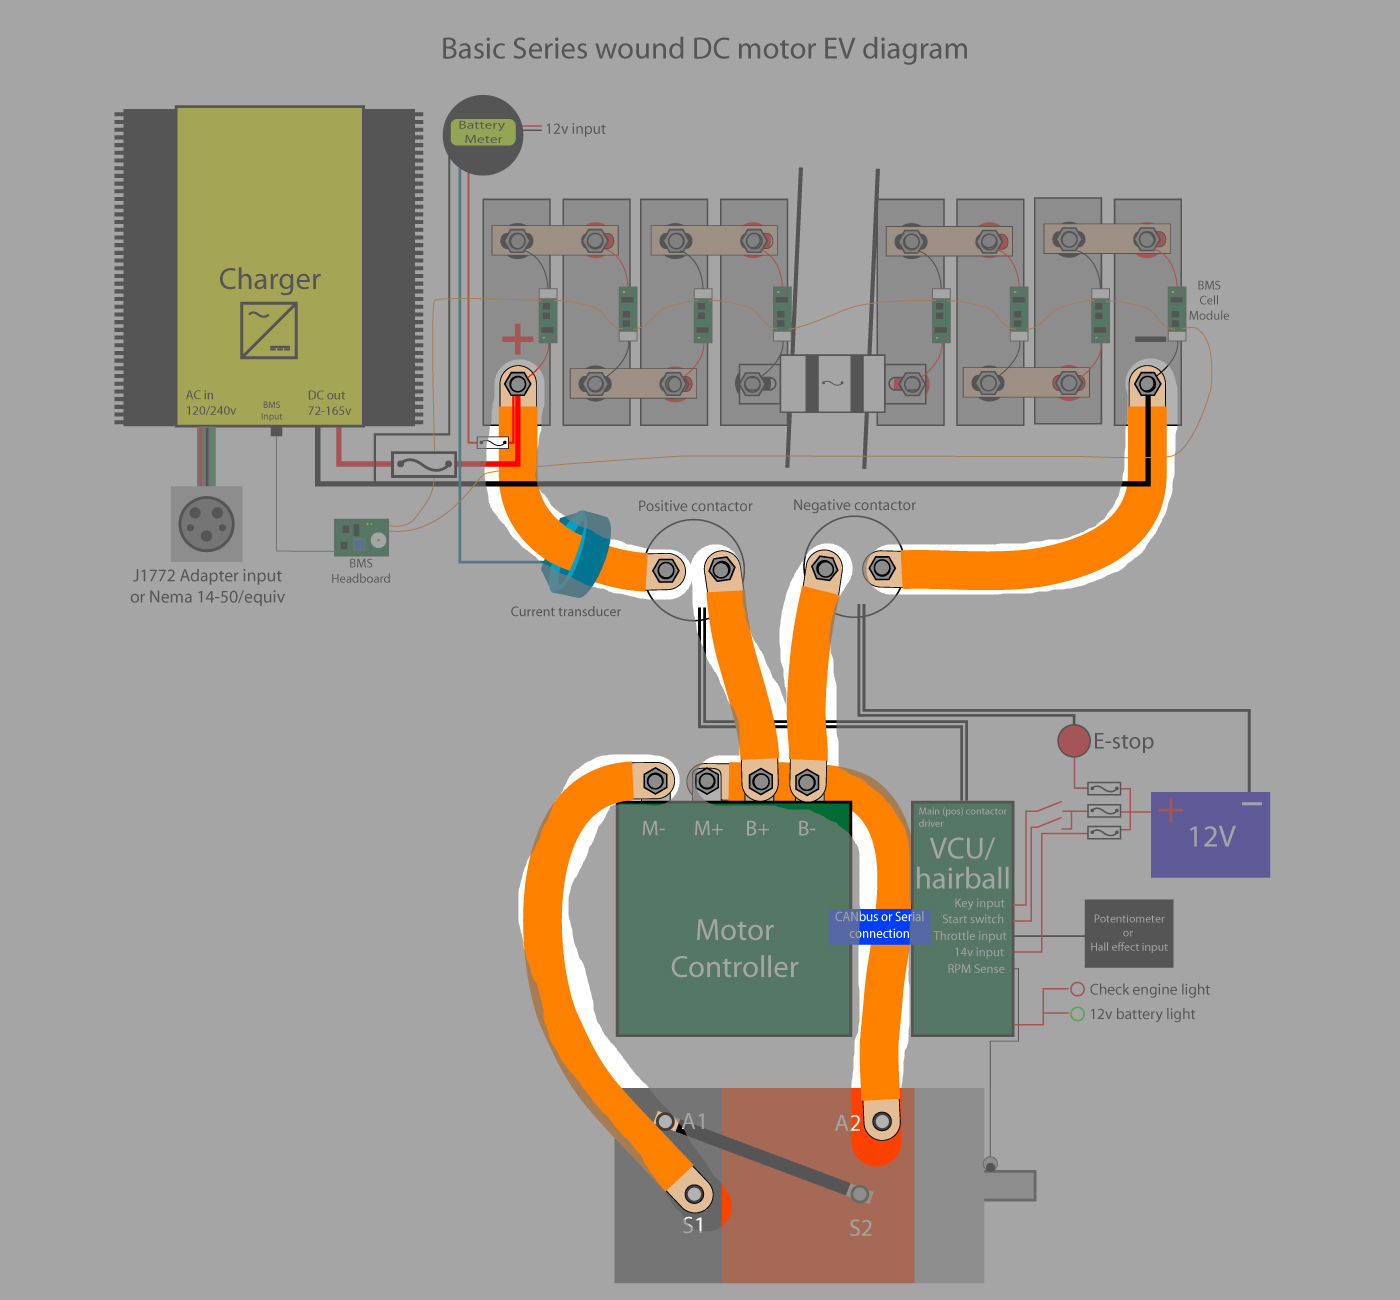 3 Phase Ev Wiring Diagram Opinions About 208 Diagrams Diy Conversion Part It S Lightning Y All Rh Gearboxmagazine Com Circuit Breaker